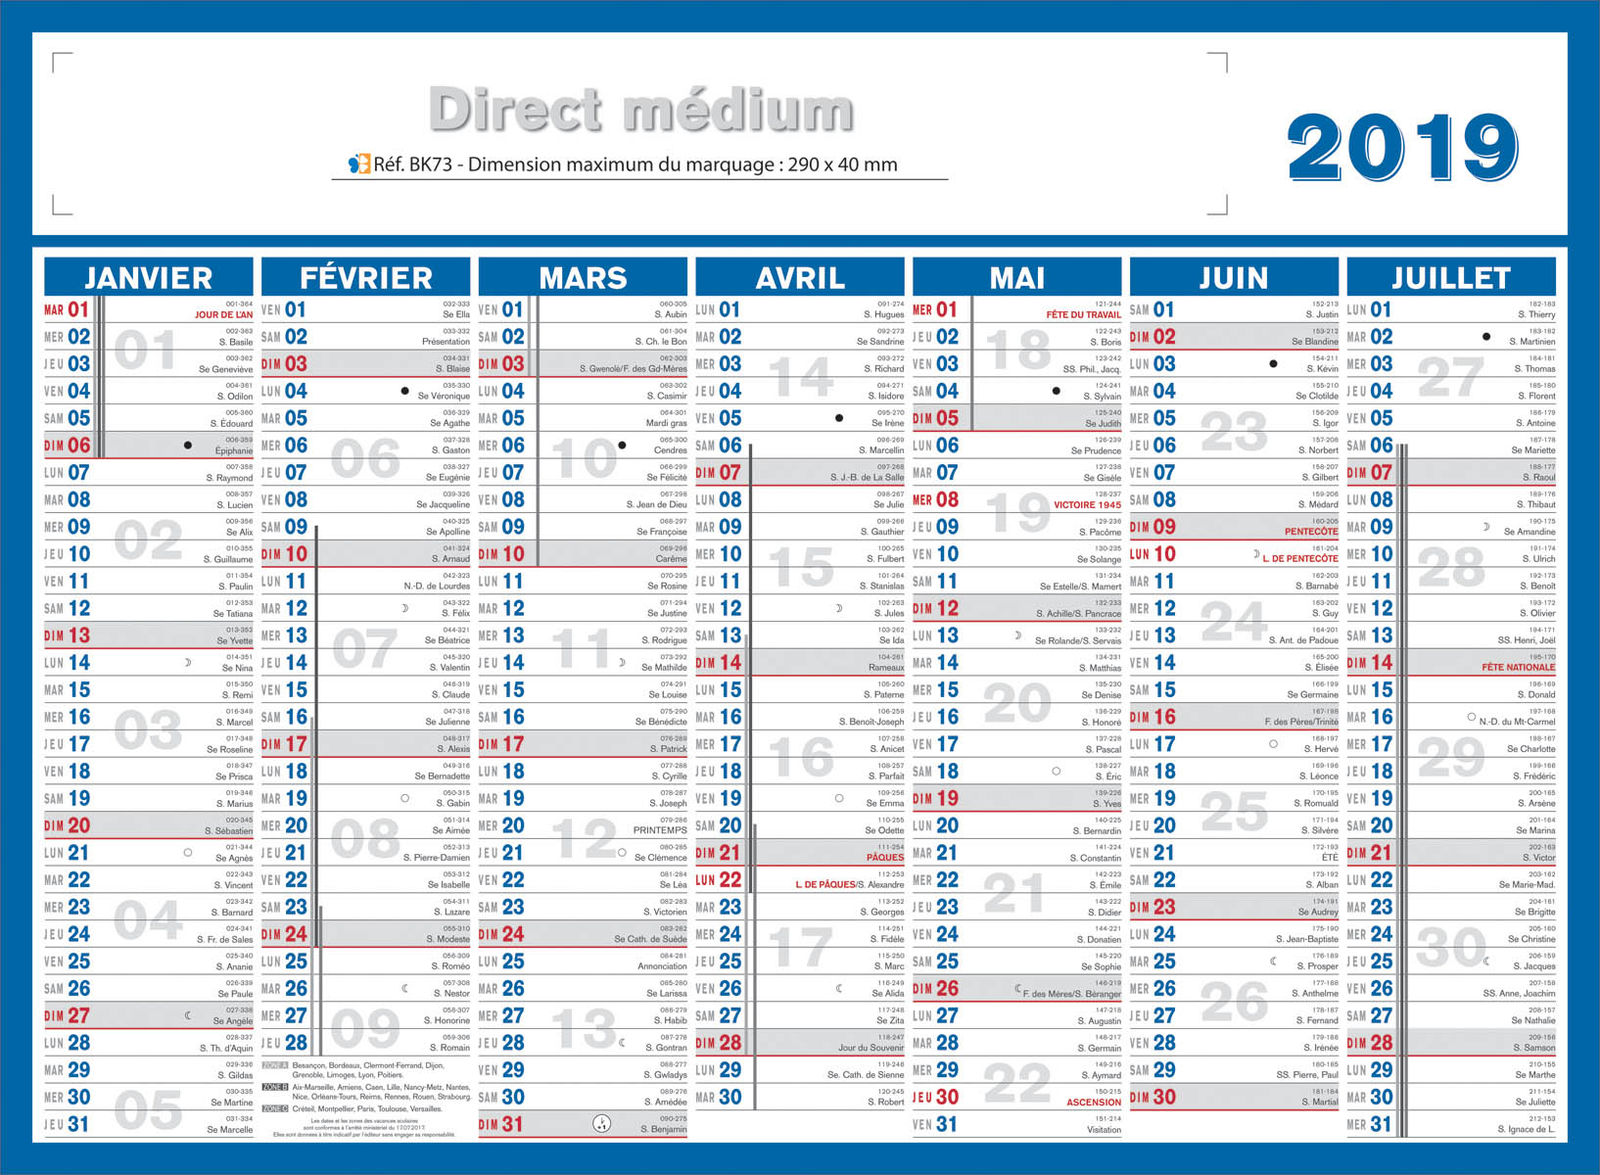 Calendrier Personnalise Entreprise.Impression Medium Direct Medium Direct Kelprint